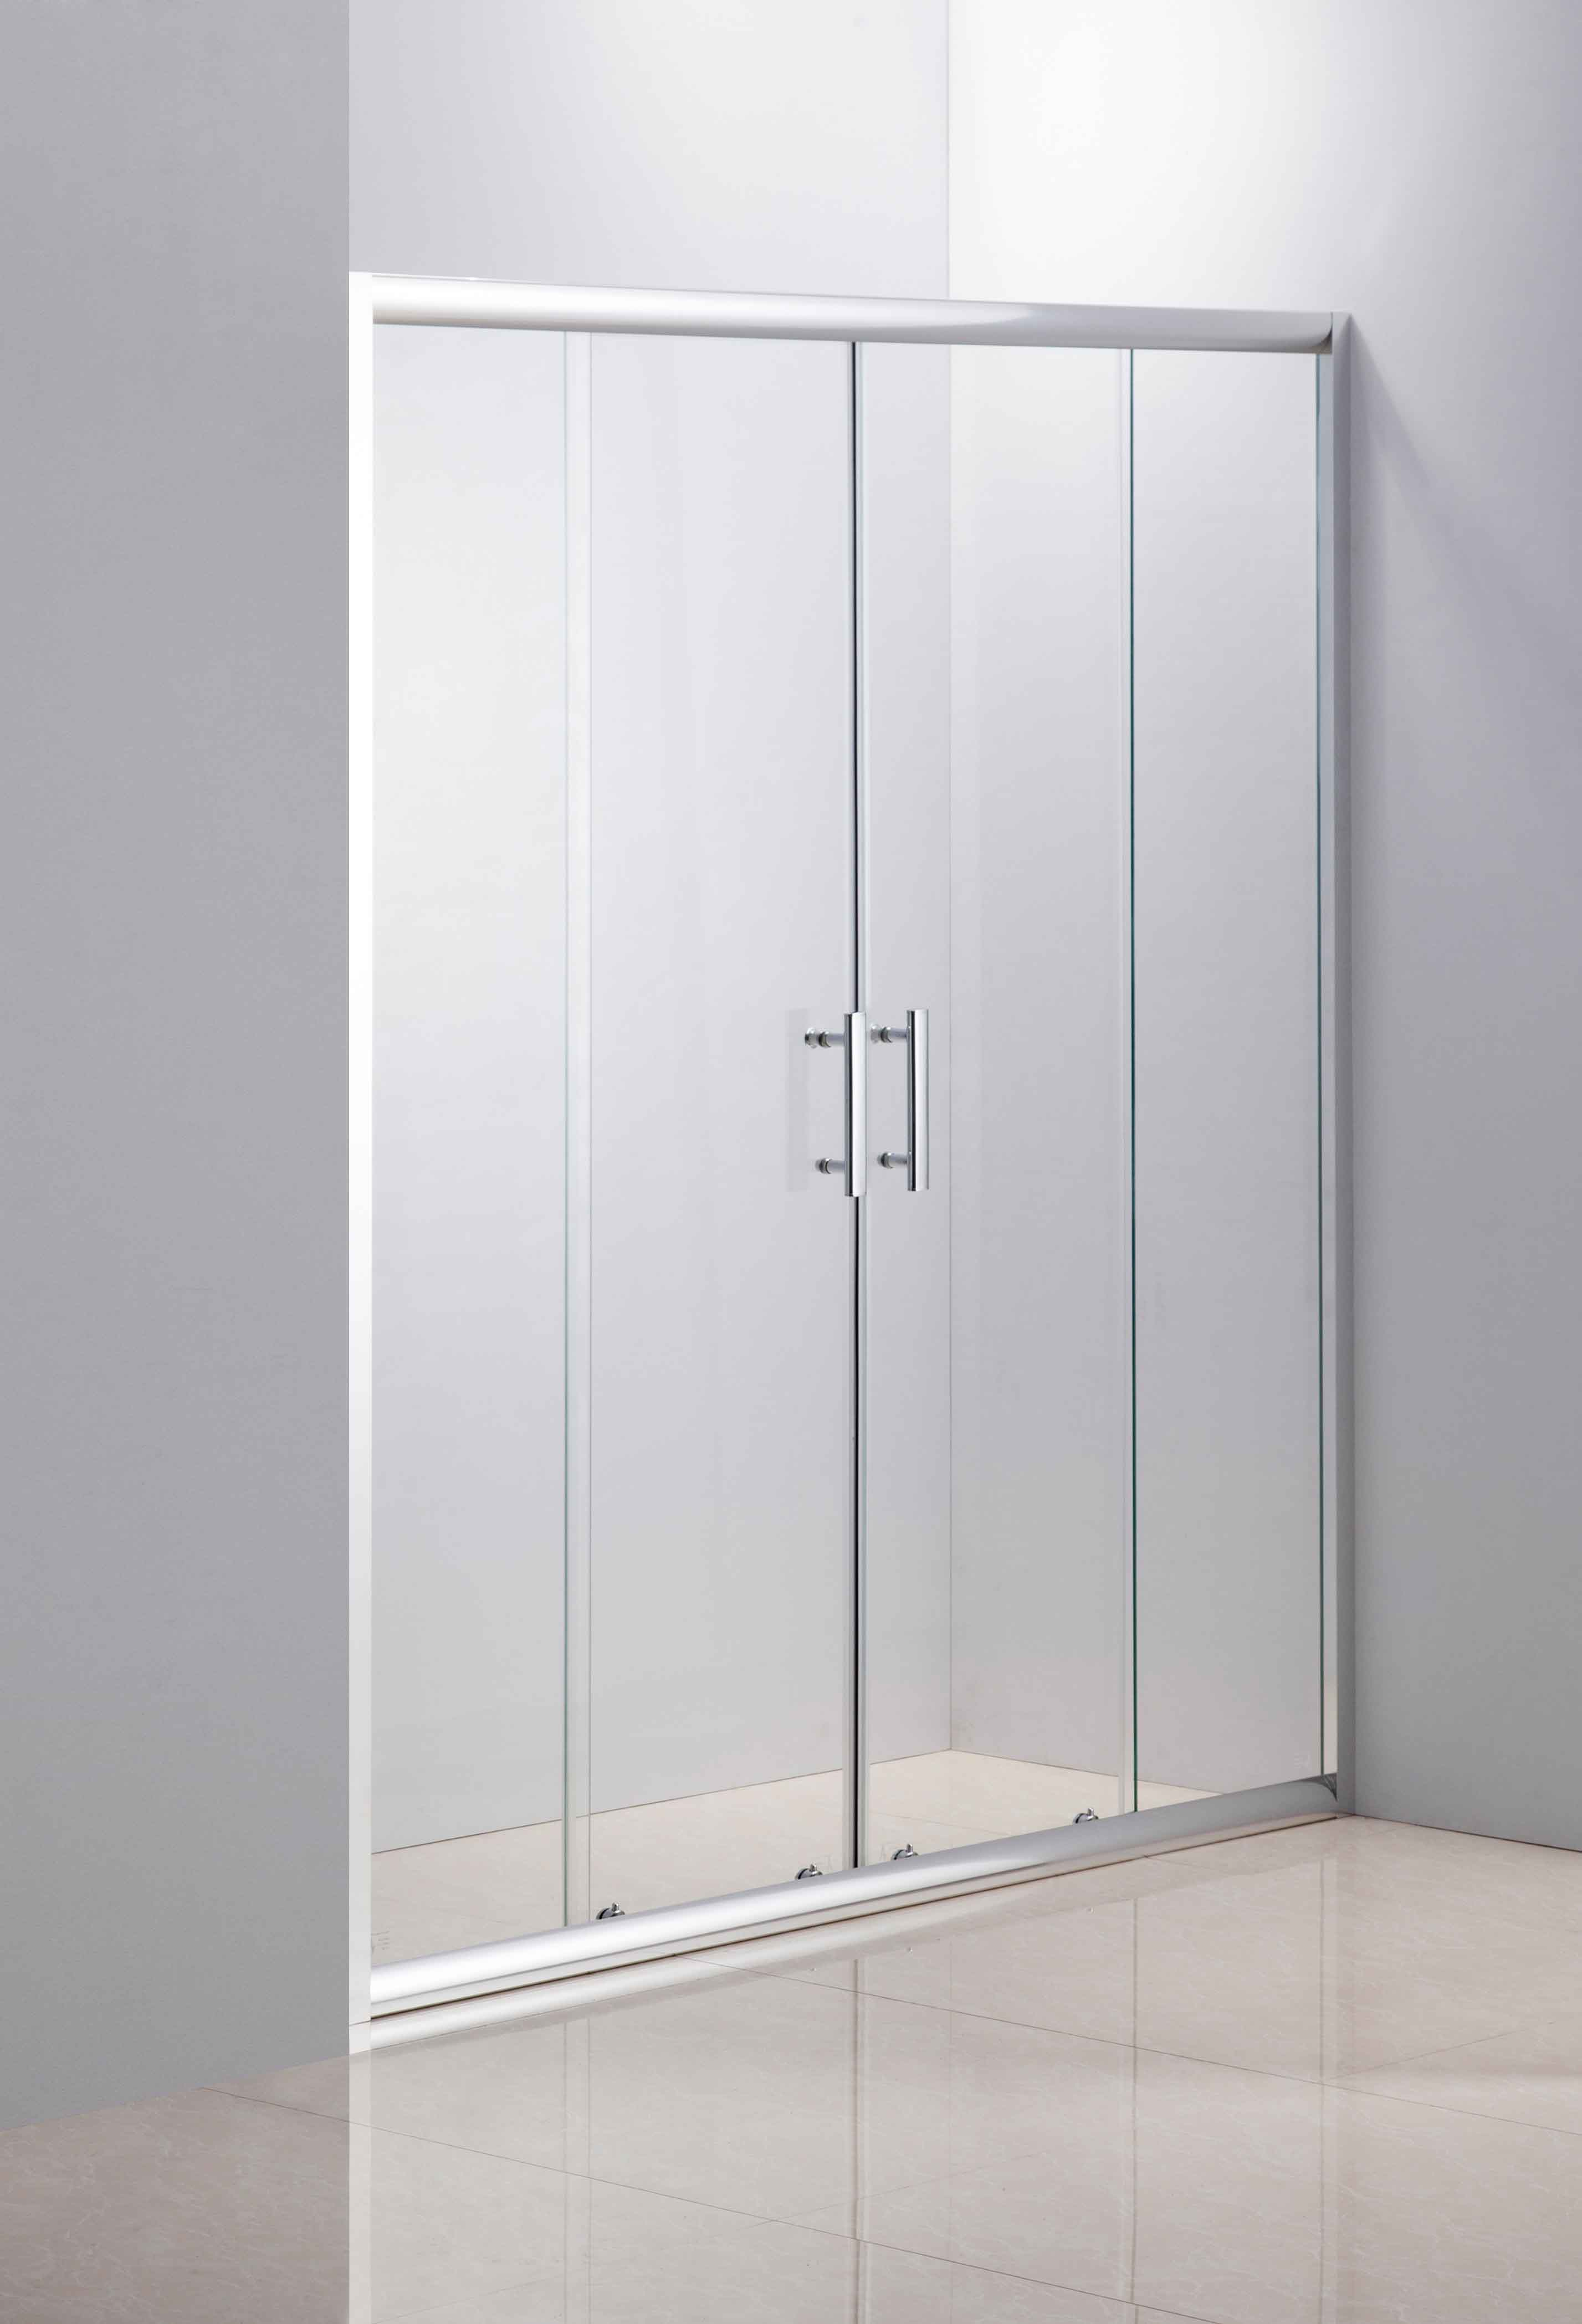 The newest design is sliding glass shower door 7